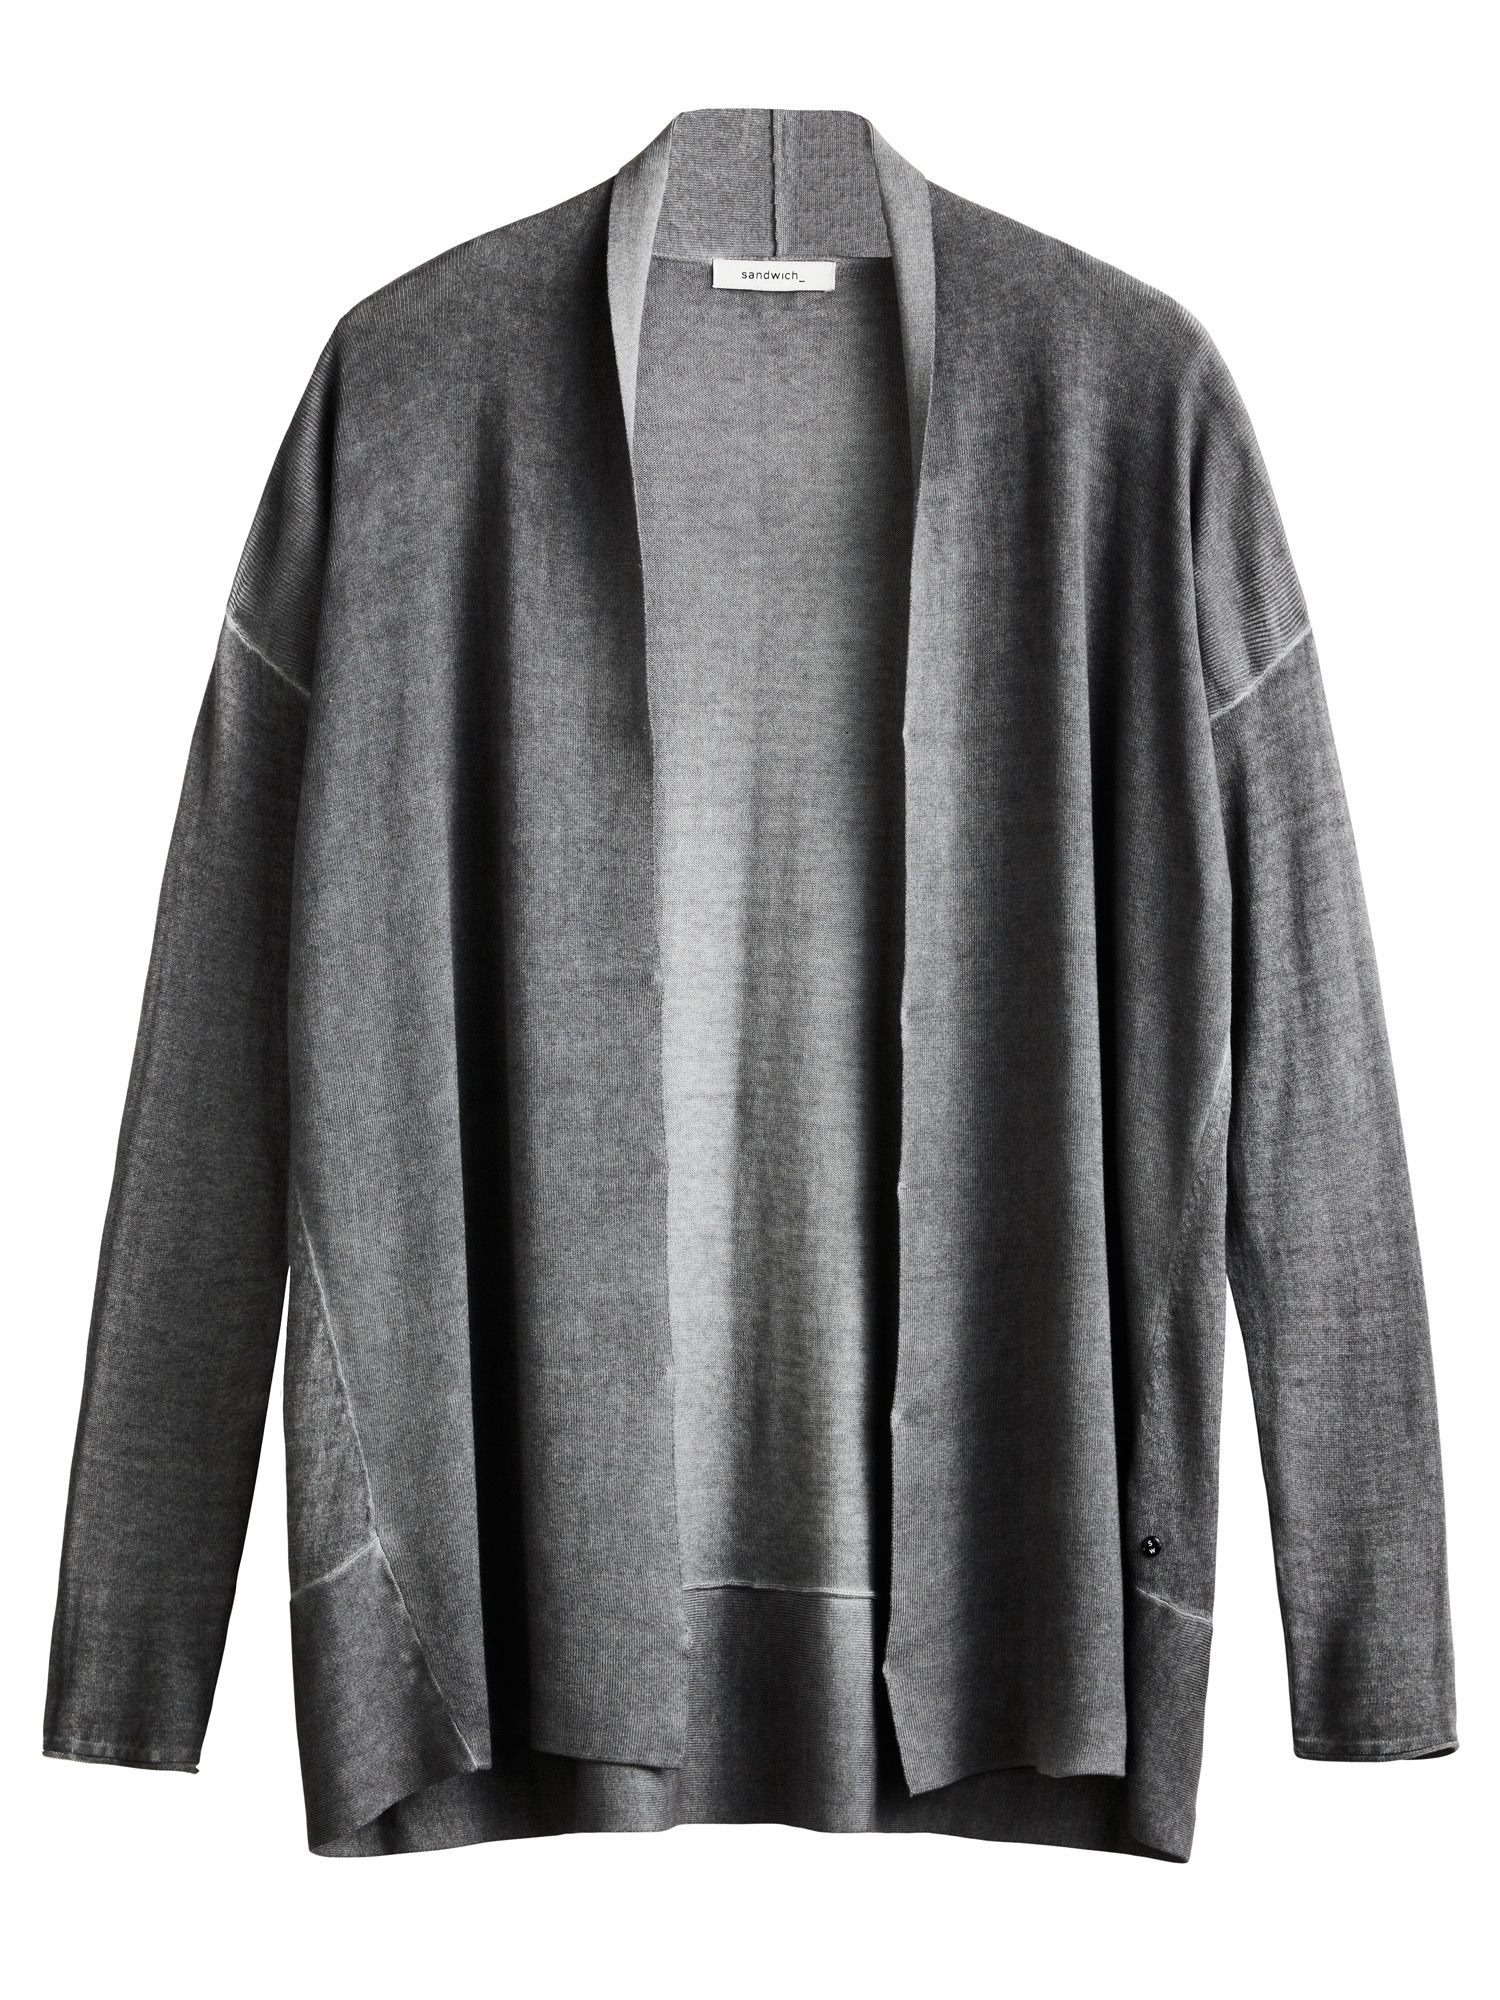 Sandwich Sandwich Edge to edge cardigan, Grey